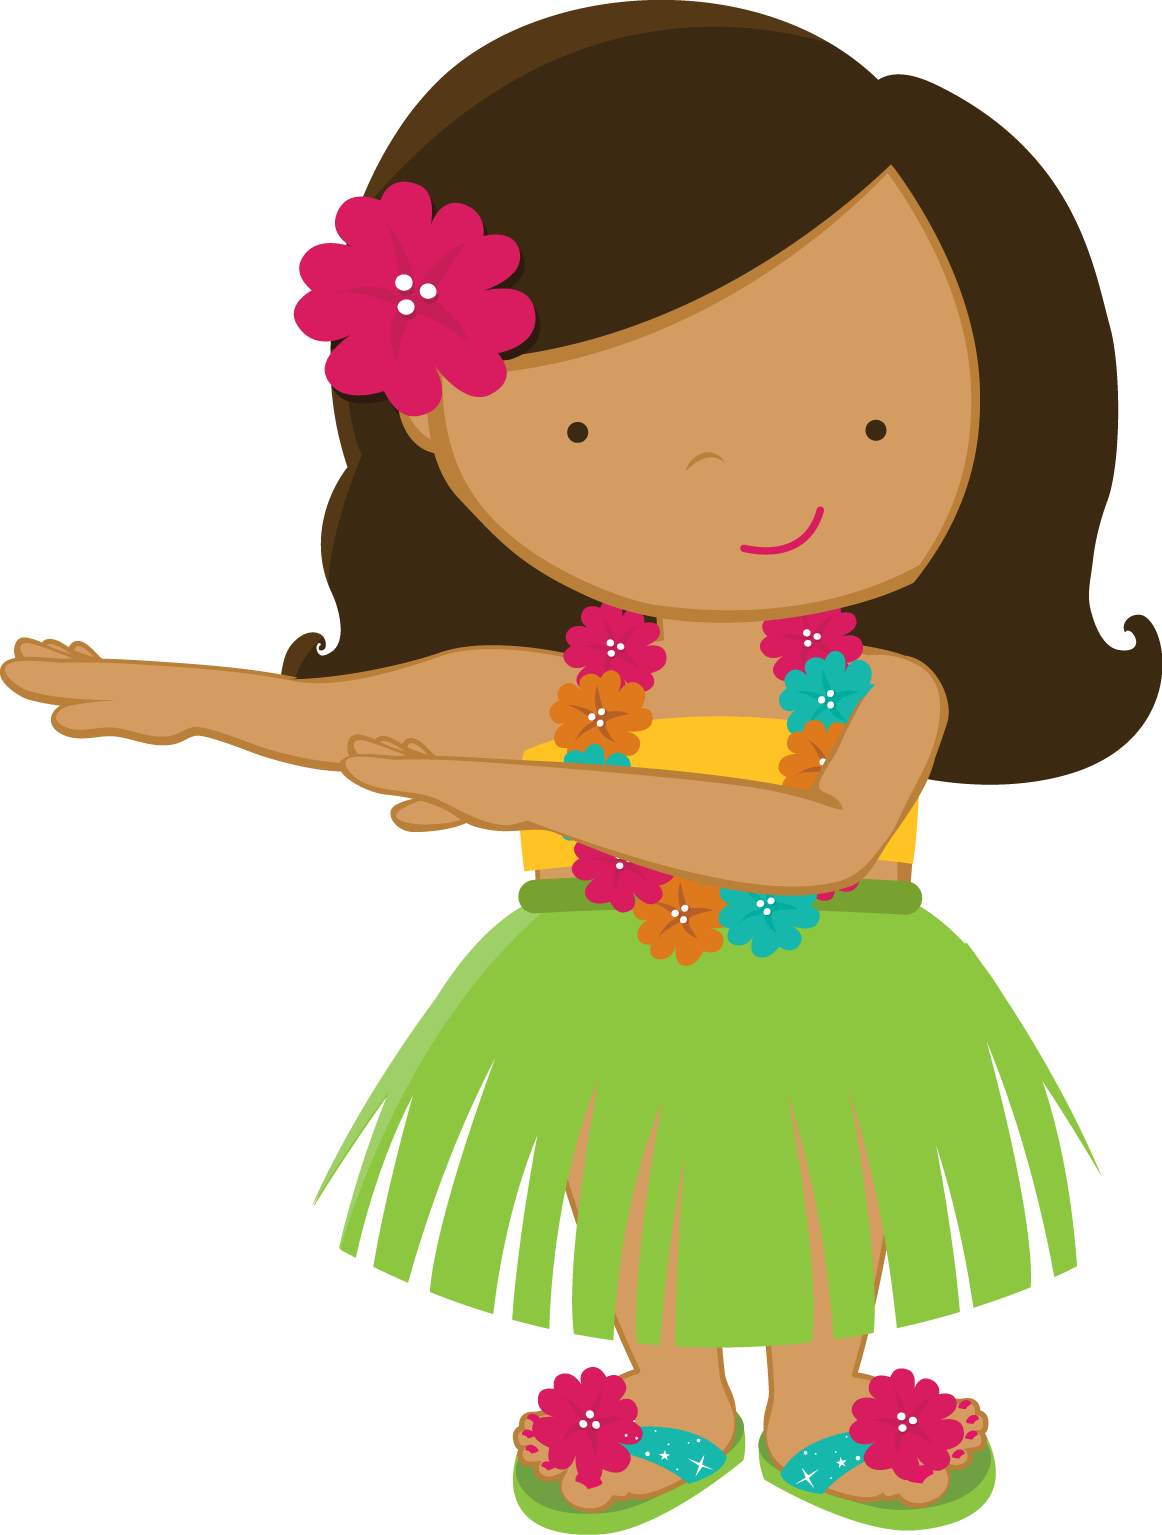 Luau clipart back to school. For kids oh my